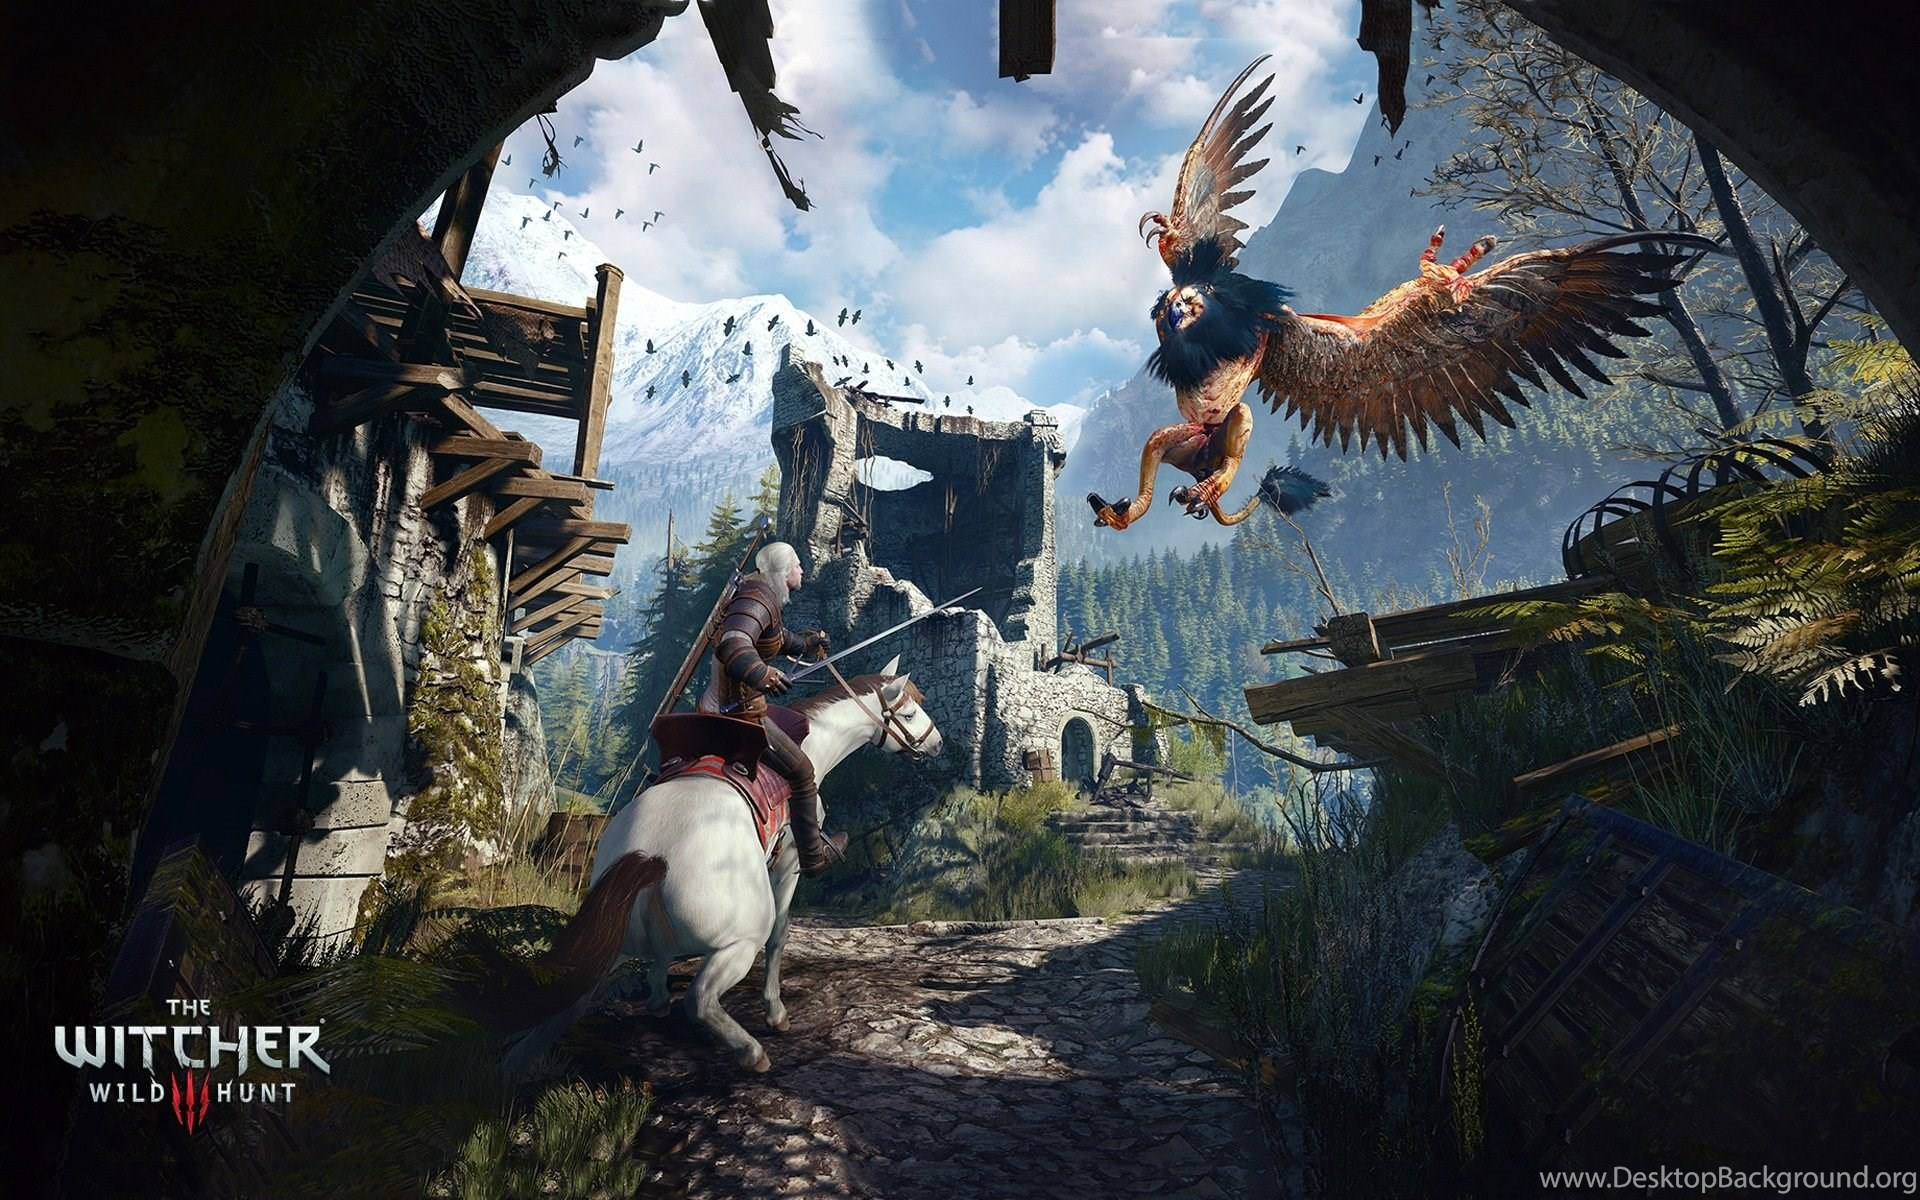 Ciri Witcher 3 Game Wallpapers Hd Free Download For Desktop